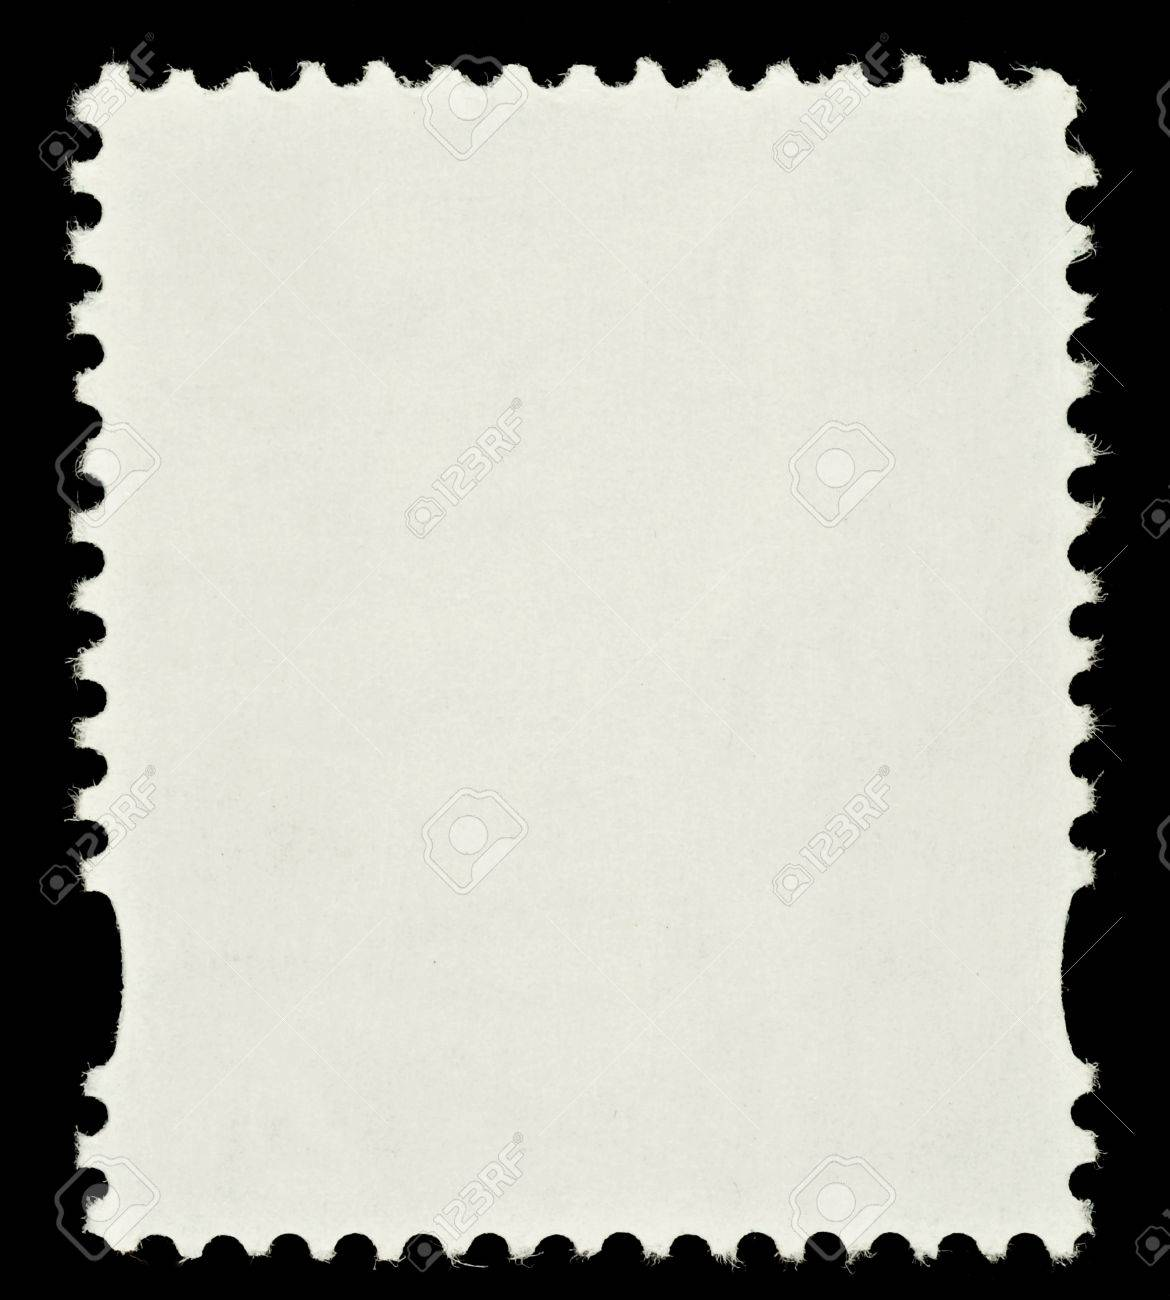 Blank Postage Stamp Framed By Black Border Stock Photo